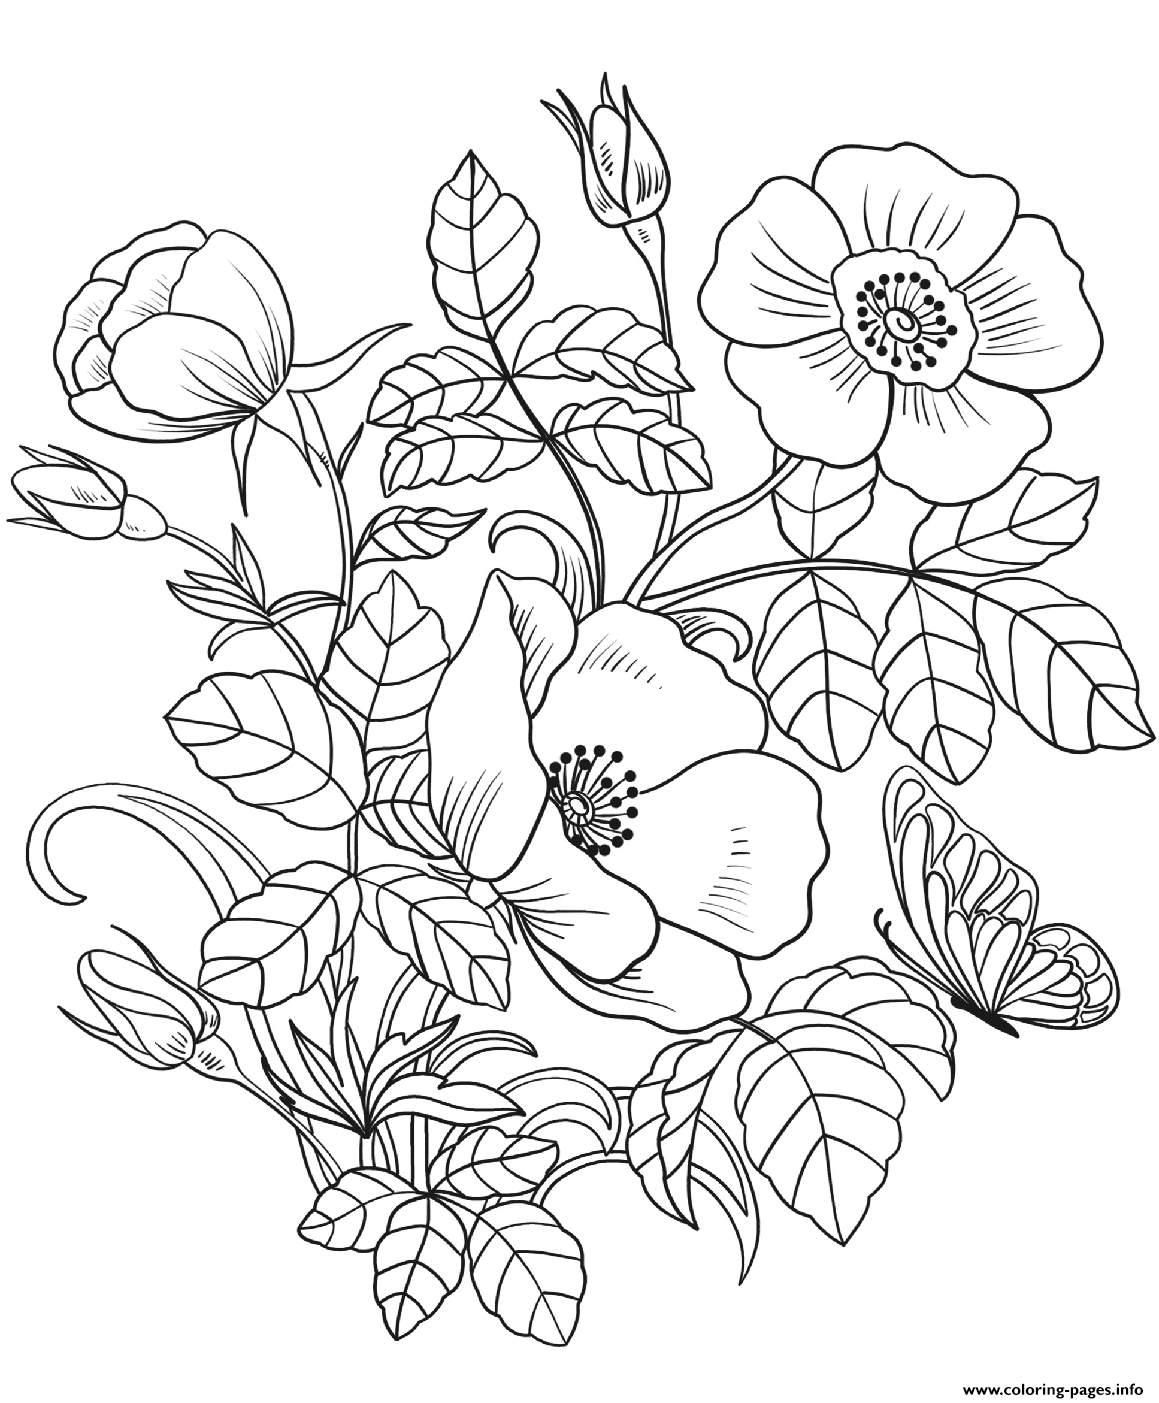 images of flowers to color summer flowers printable coloring pages free large images to of images color flowers